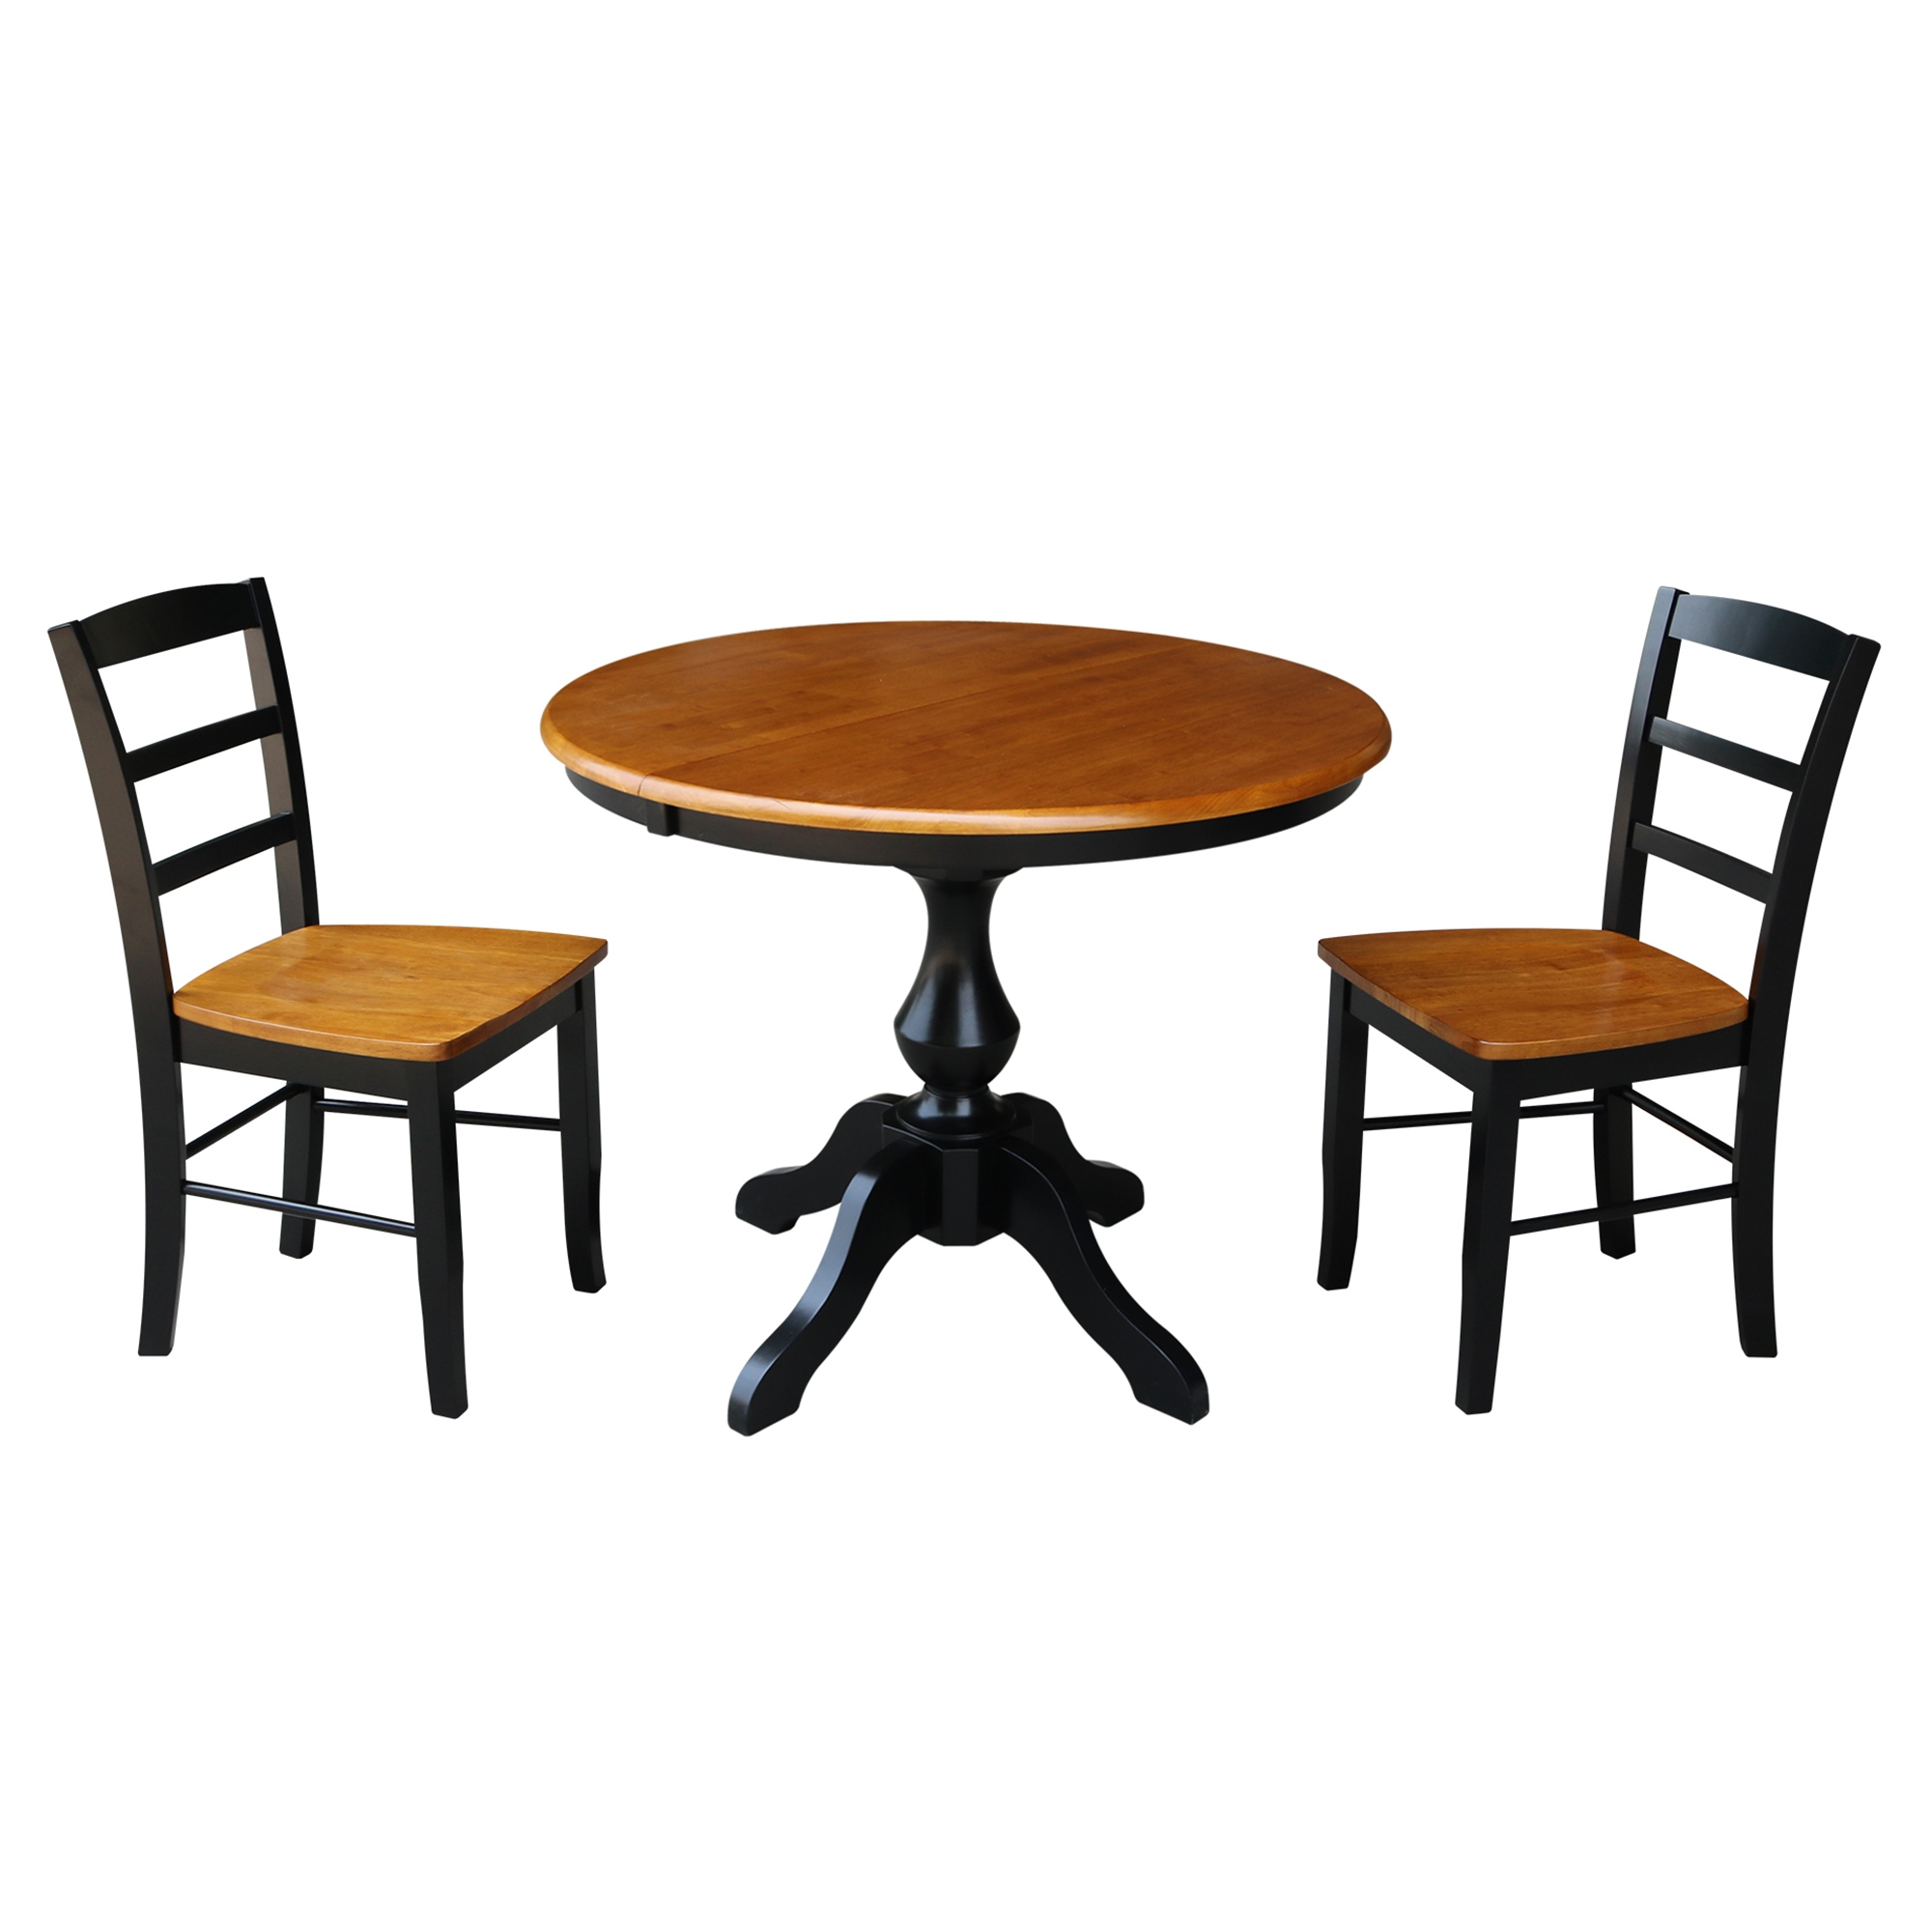 "36"" Round Dining Table with 12"" Leaf and 2 Madrid Chairs - Black/Cherry - 3 Piece Set"